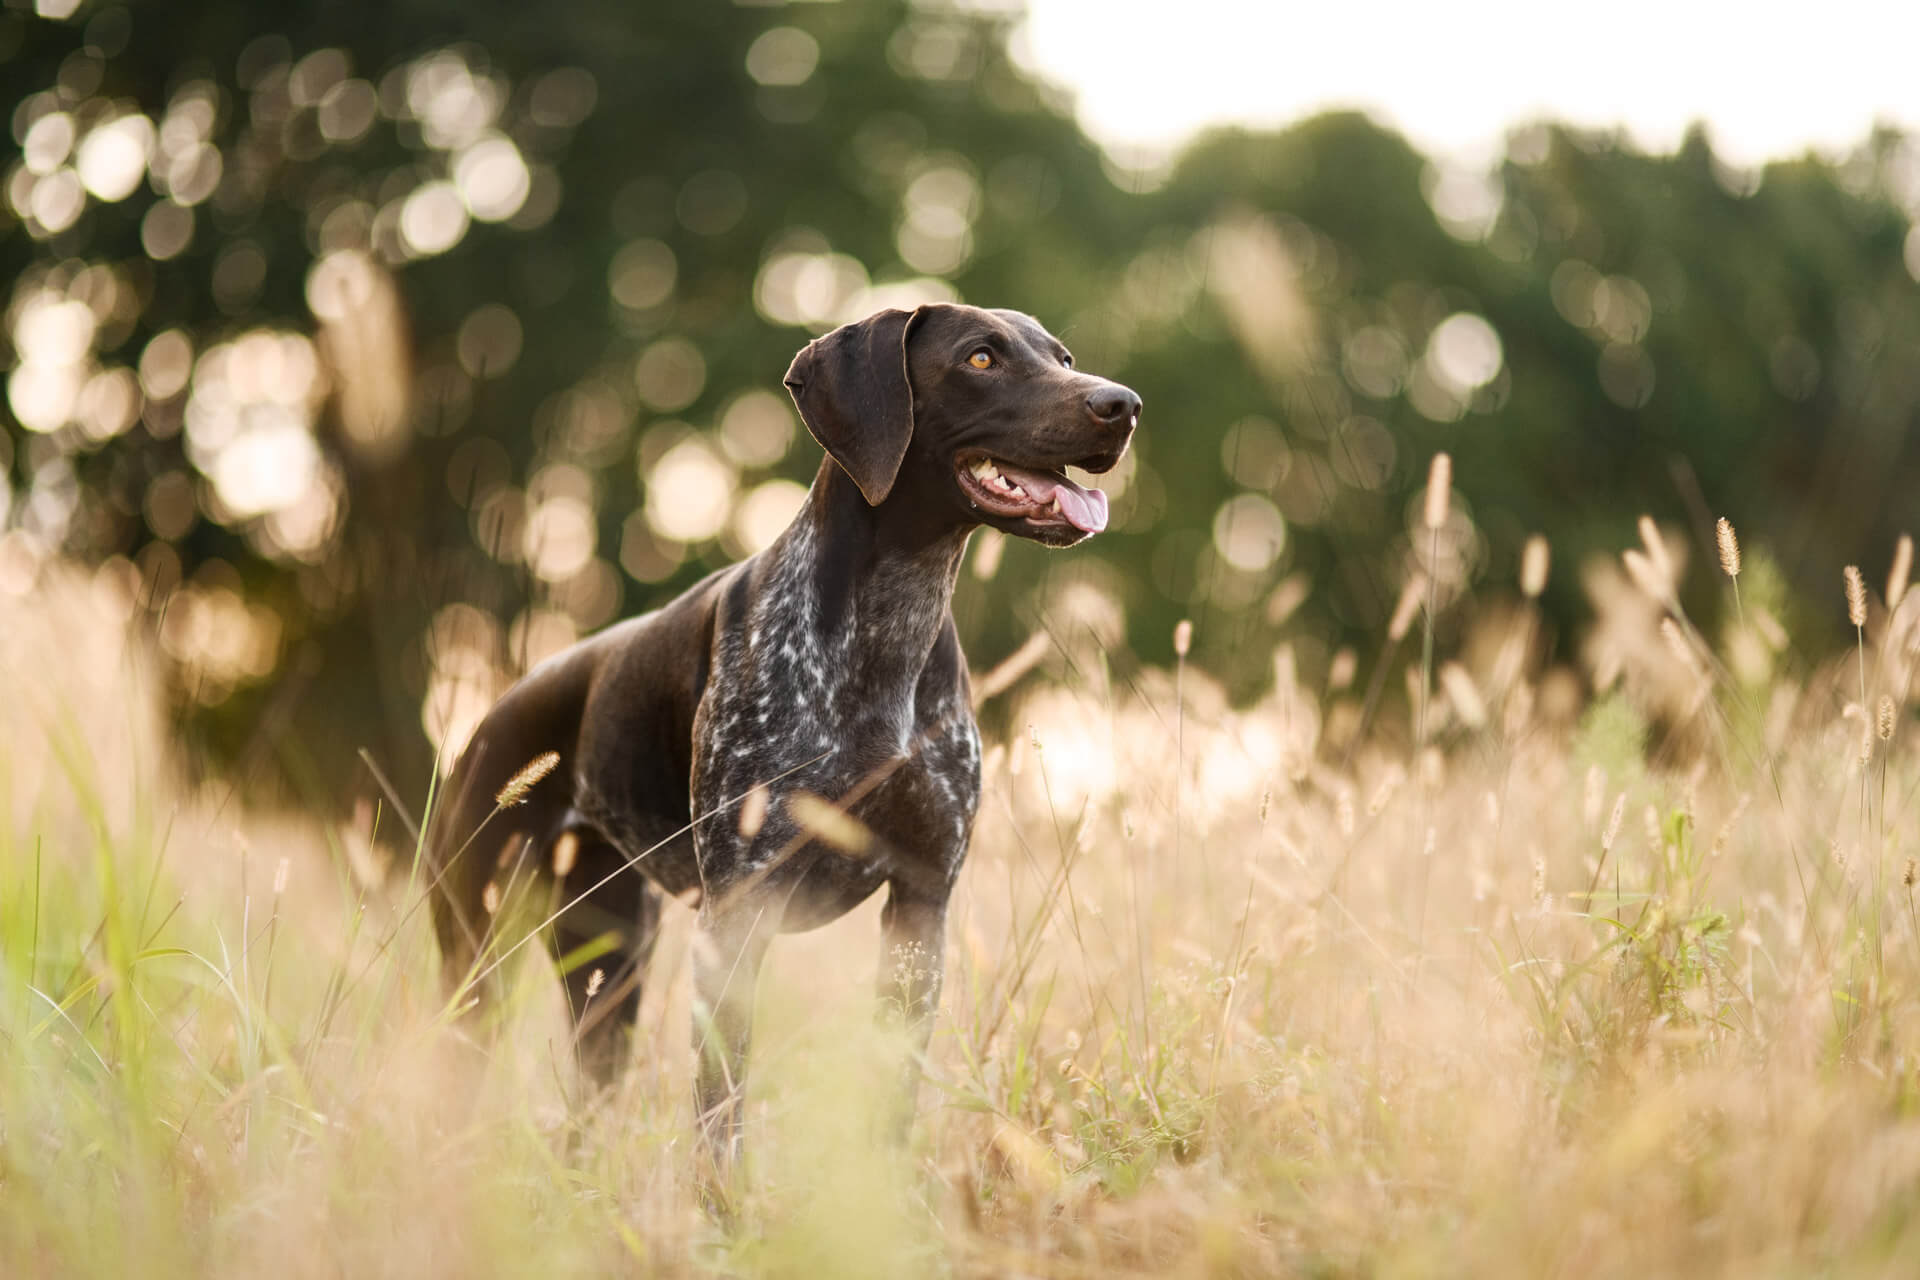 brown dog standing in field